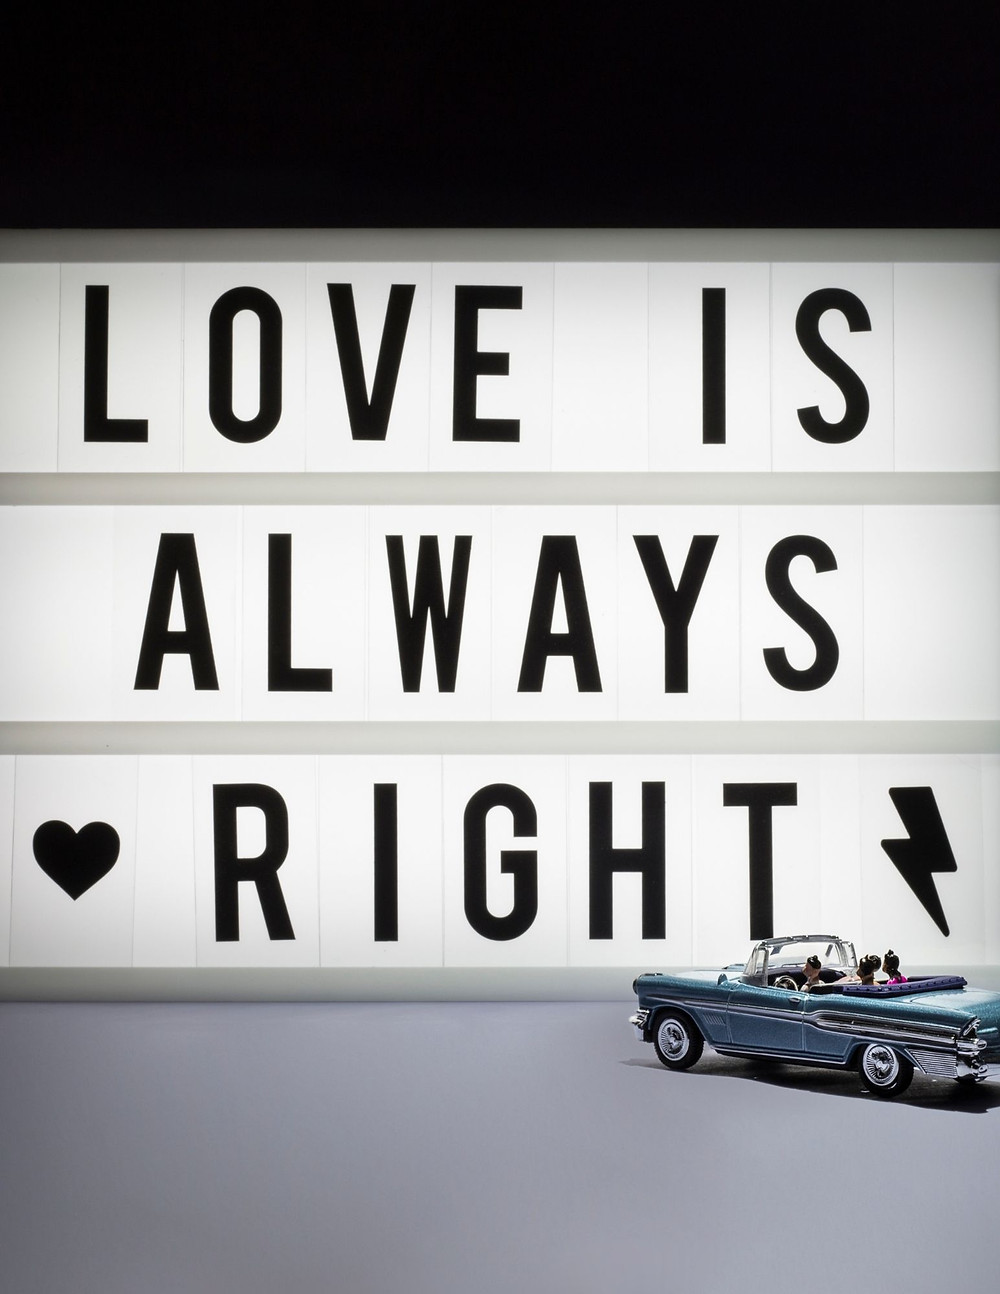 Love is always right